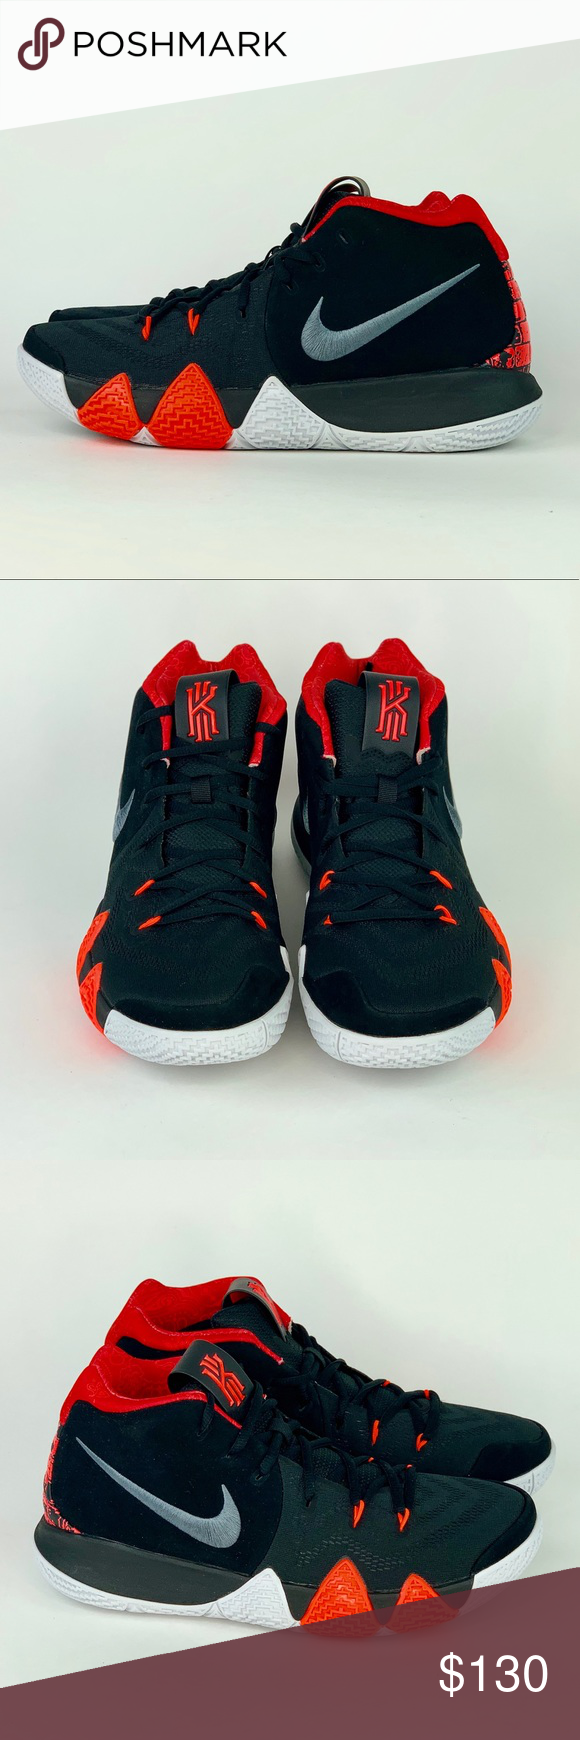 eeabb00d202aa Nike Kyrie 4 '41 For the Ages' Sz 10 Brand New Nike Kyrie 4 '41 For ...